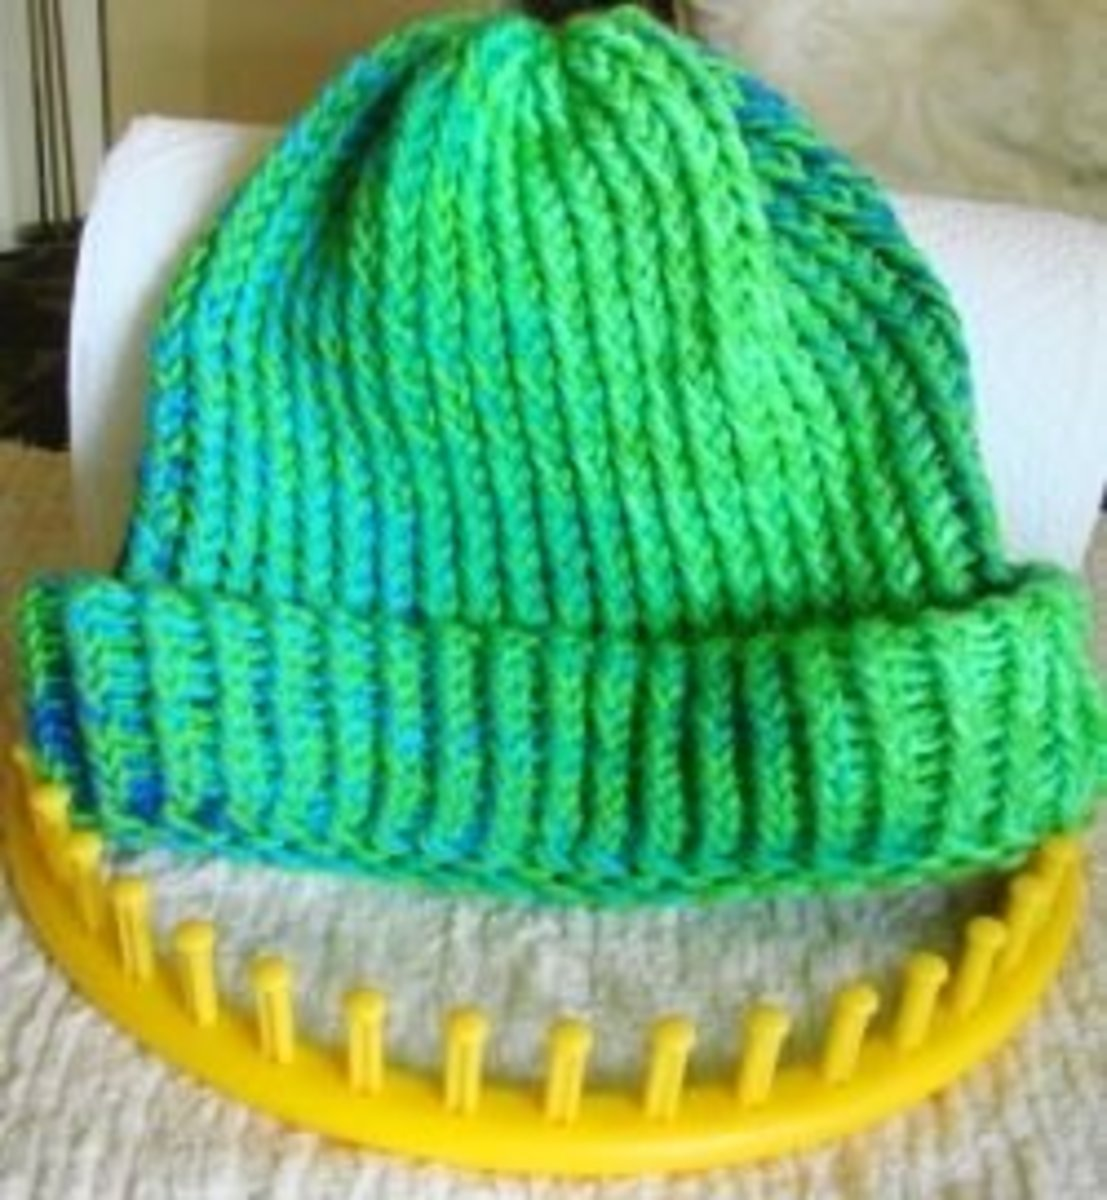 My favorite hat made with my yellow (XL) circular knitting loom and using solid color combined with variegated strands of acrylic 4-ply worsted weight yarn.